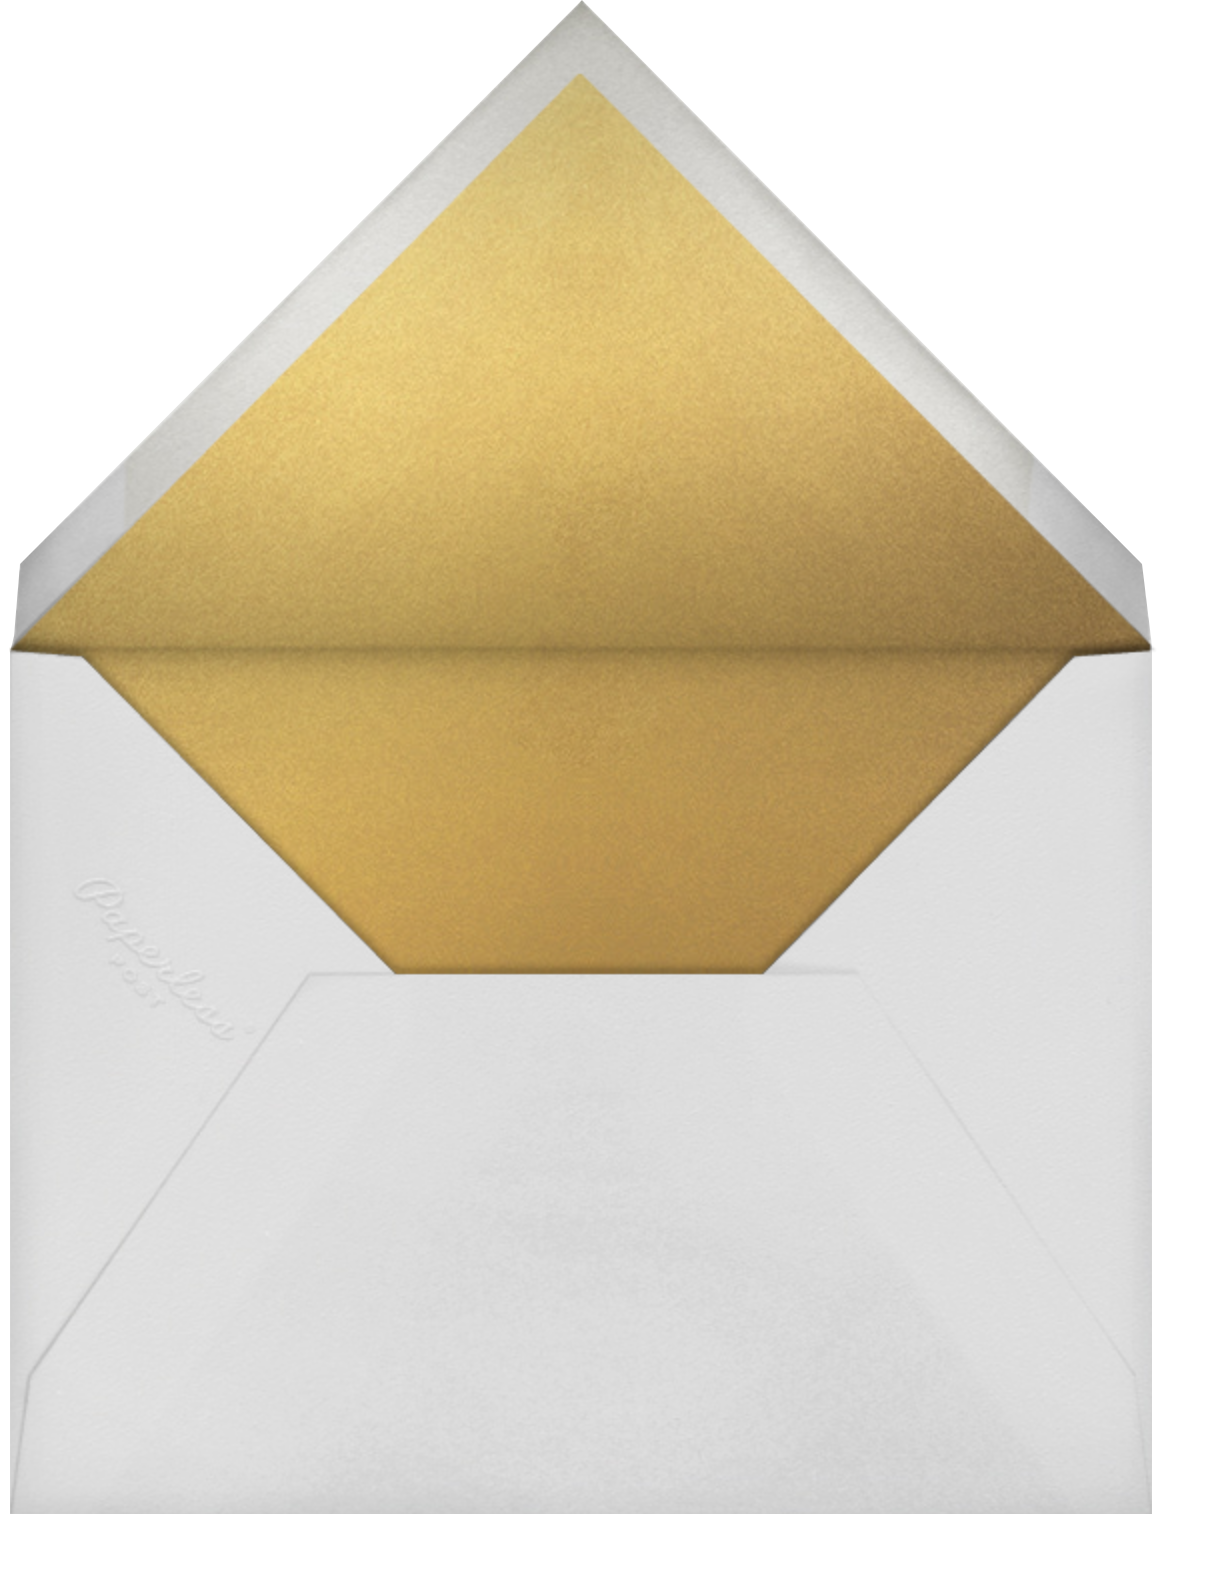 Deanei (Invitation) - Paperless Post - Virtual wedding - envelope back